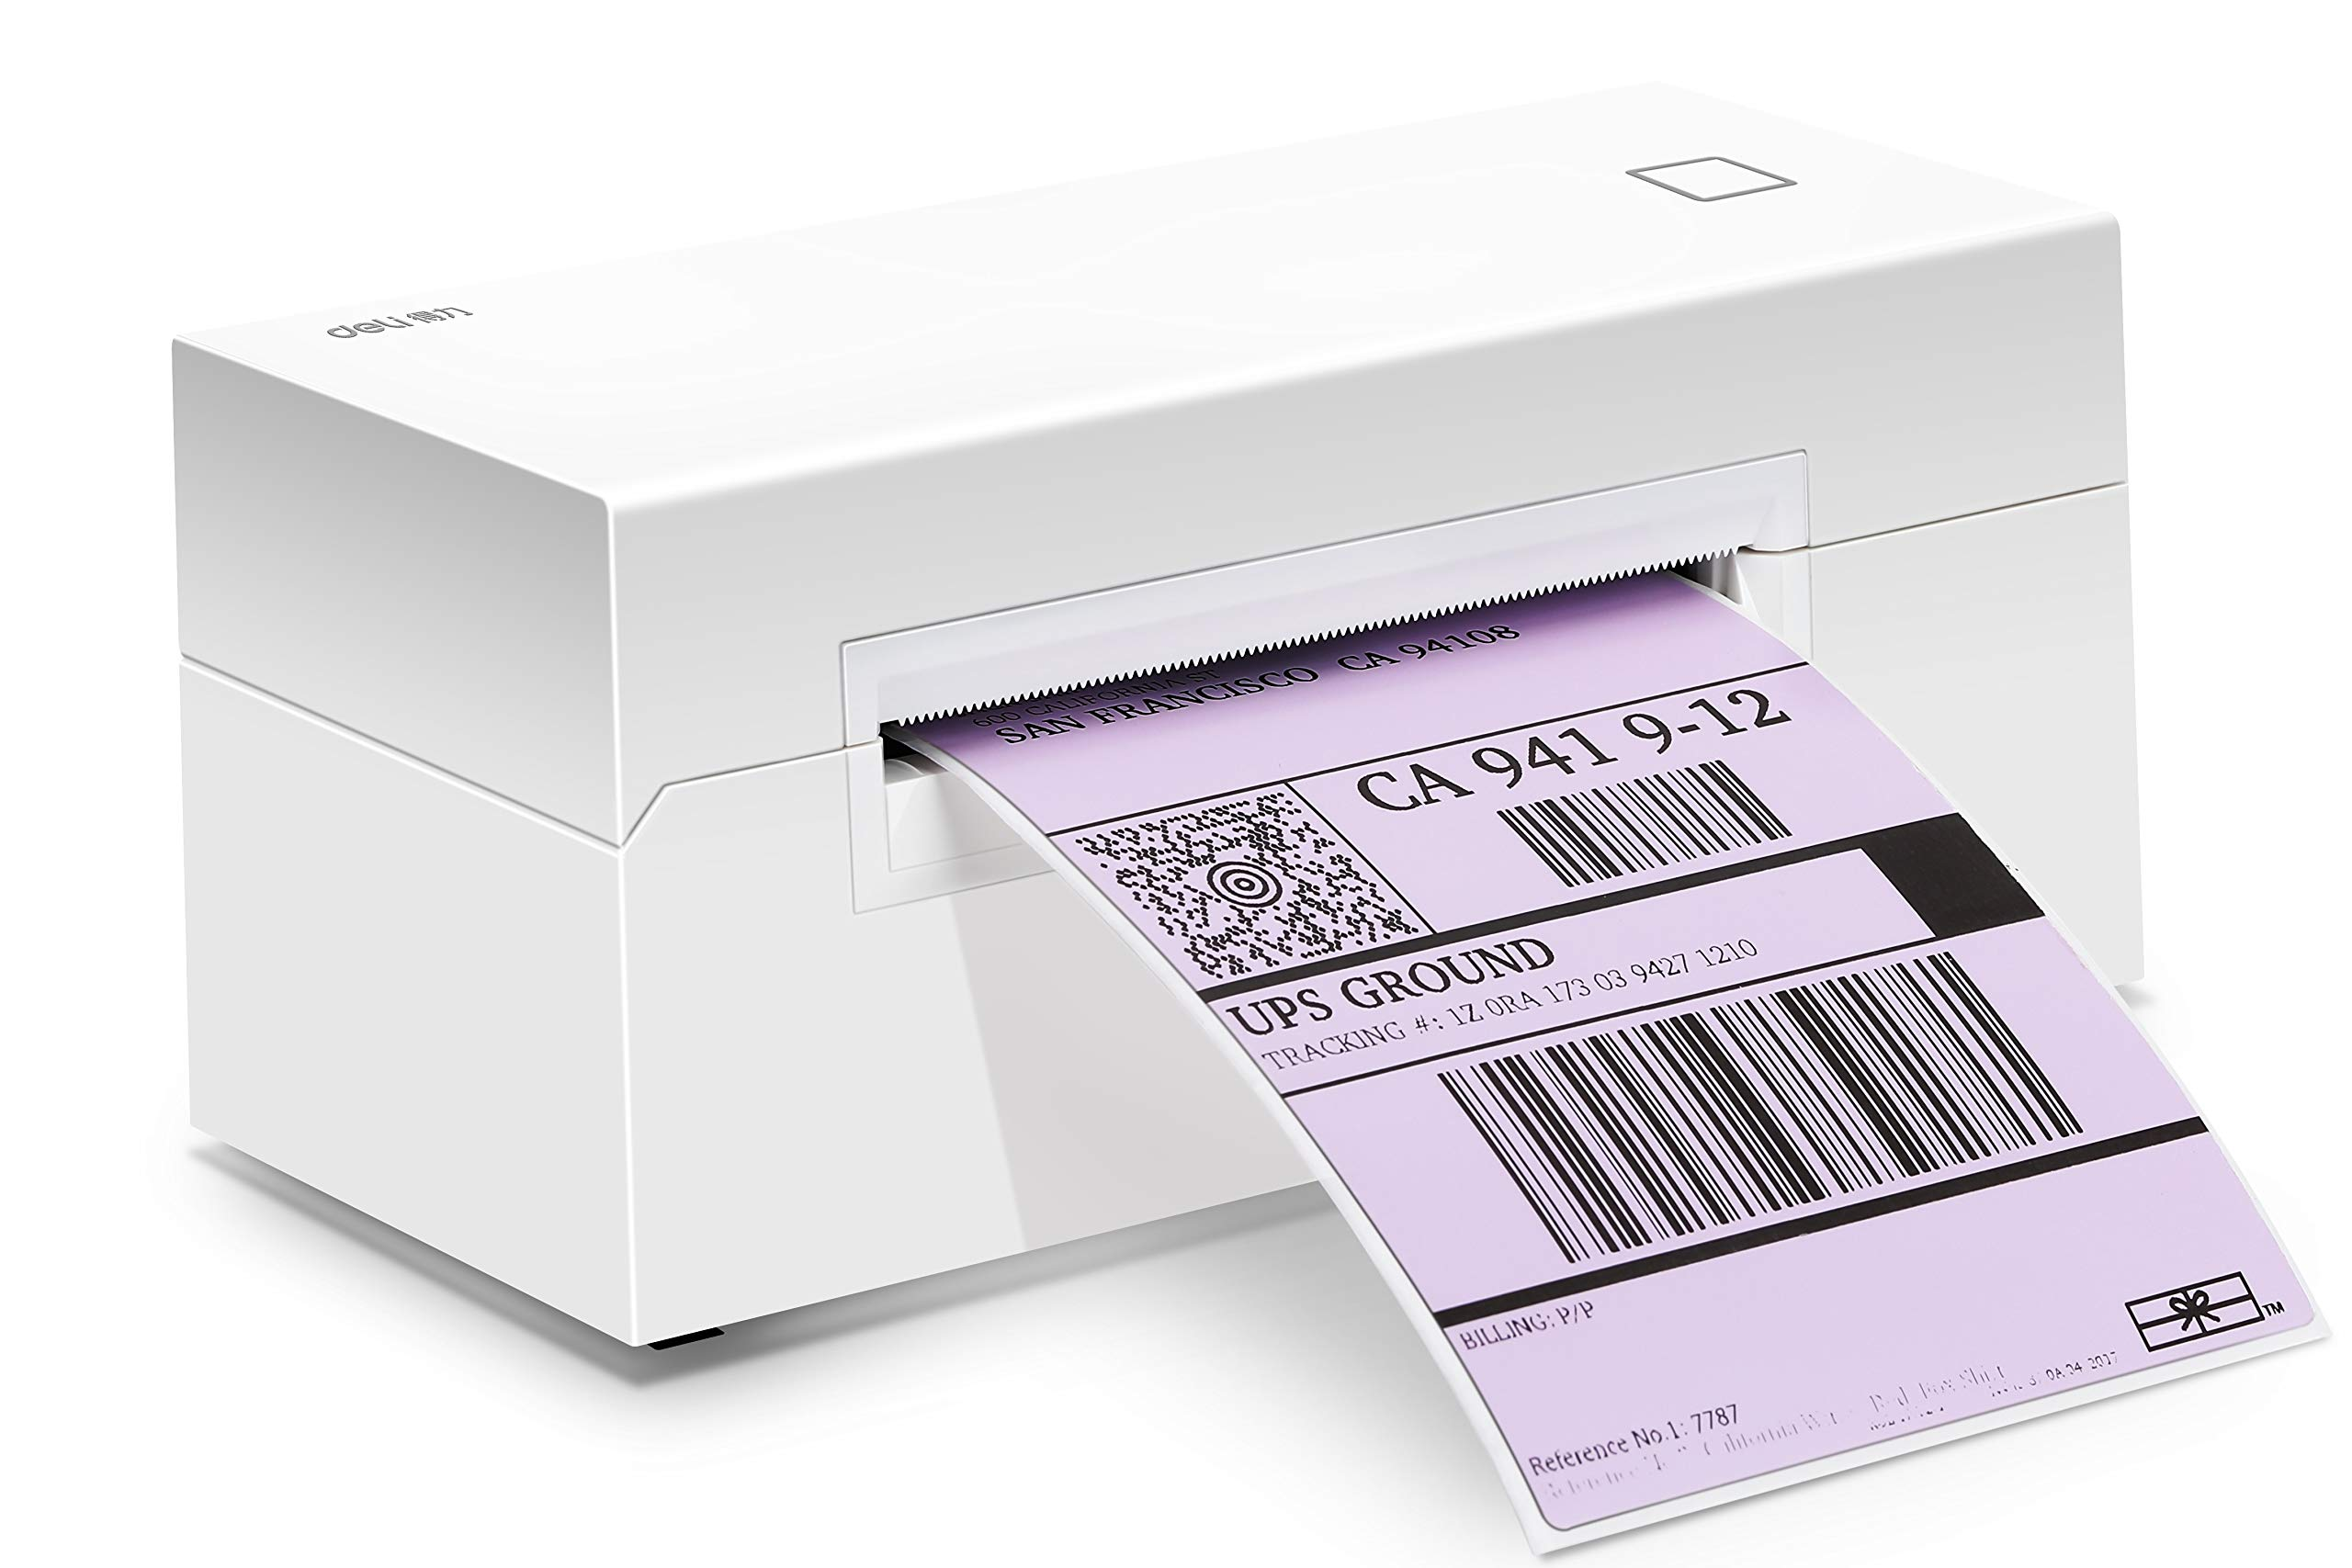 Shipping Label Printer 4×6 DL-770D High Speed 150mm/s Thermal Label Printer for